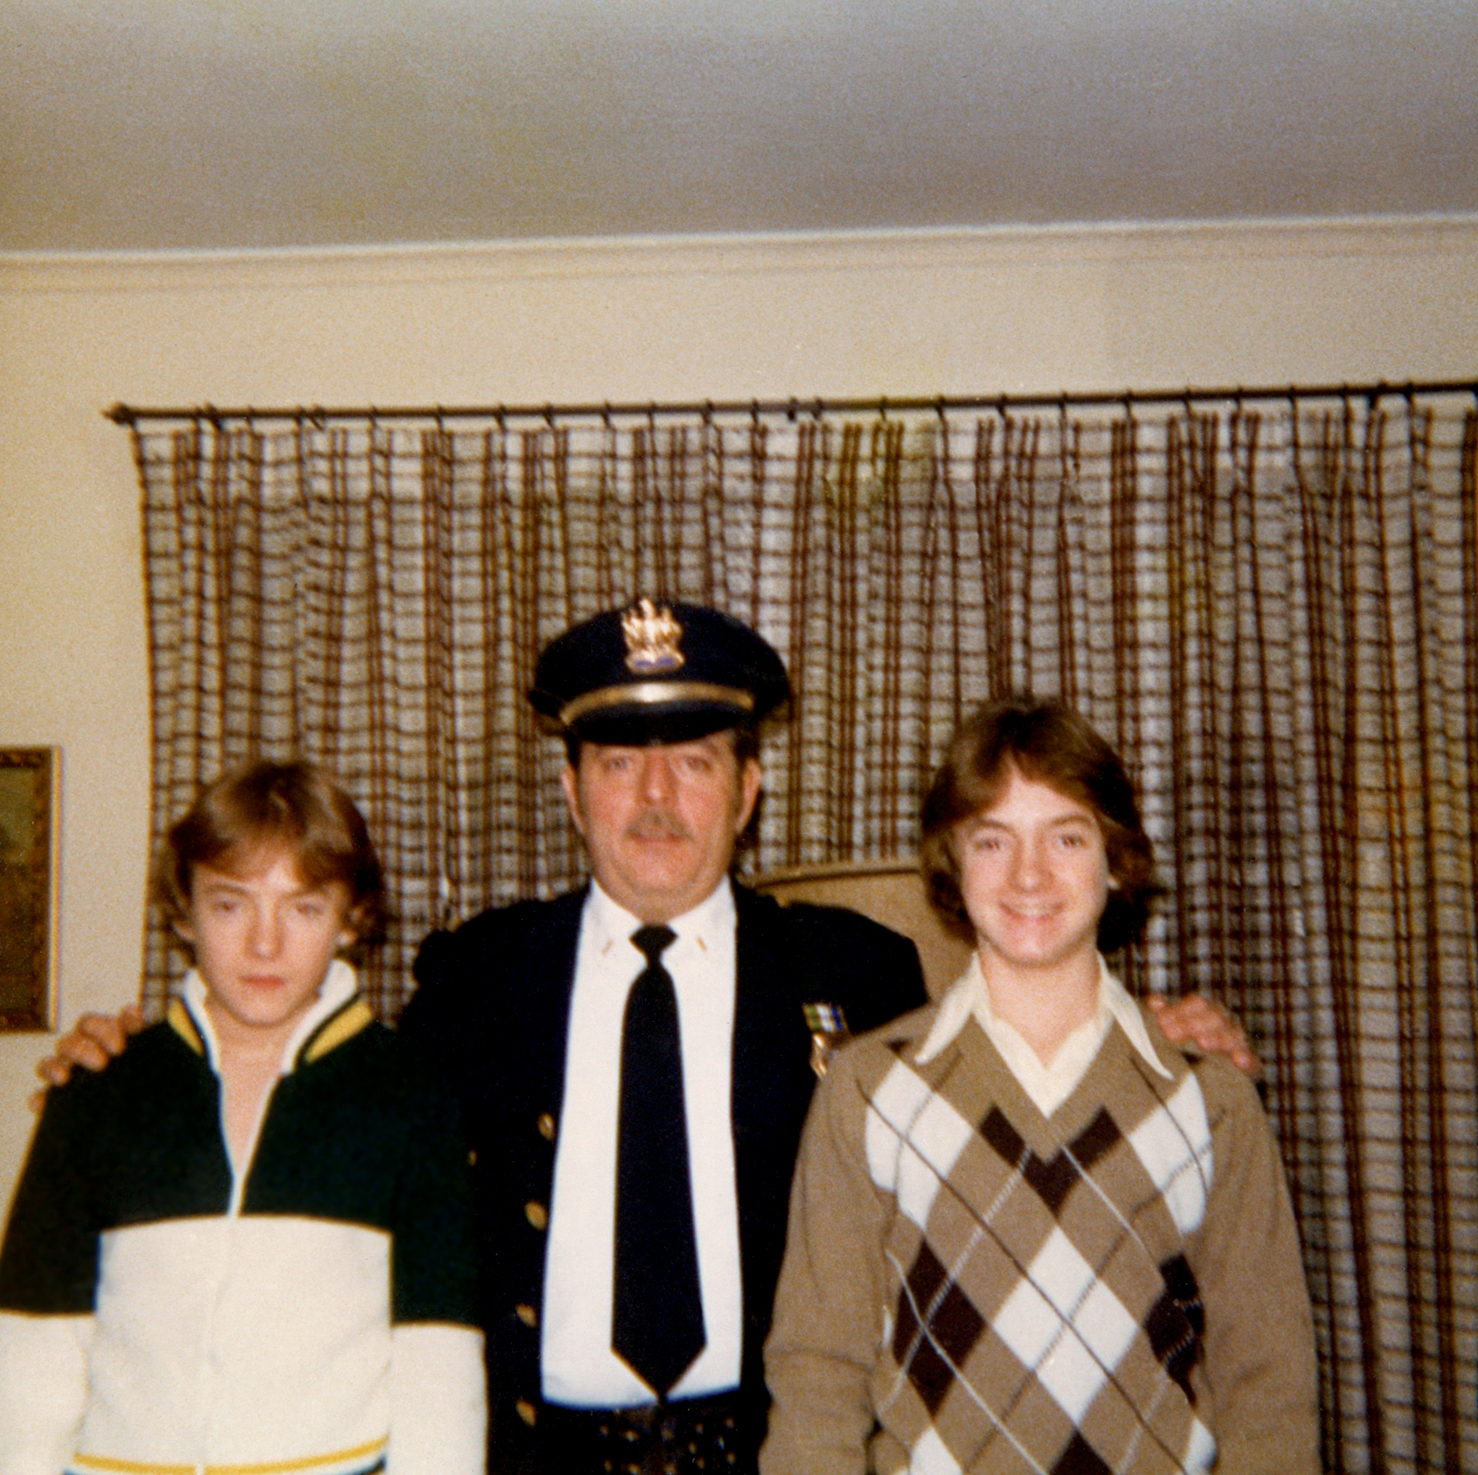 At age 15, Scott, left, and Mark with their father, Richard Kelly in 1979. Richard retired as a Captain from the West Orange, N.J., Police Department.